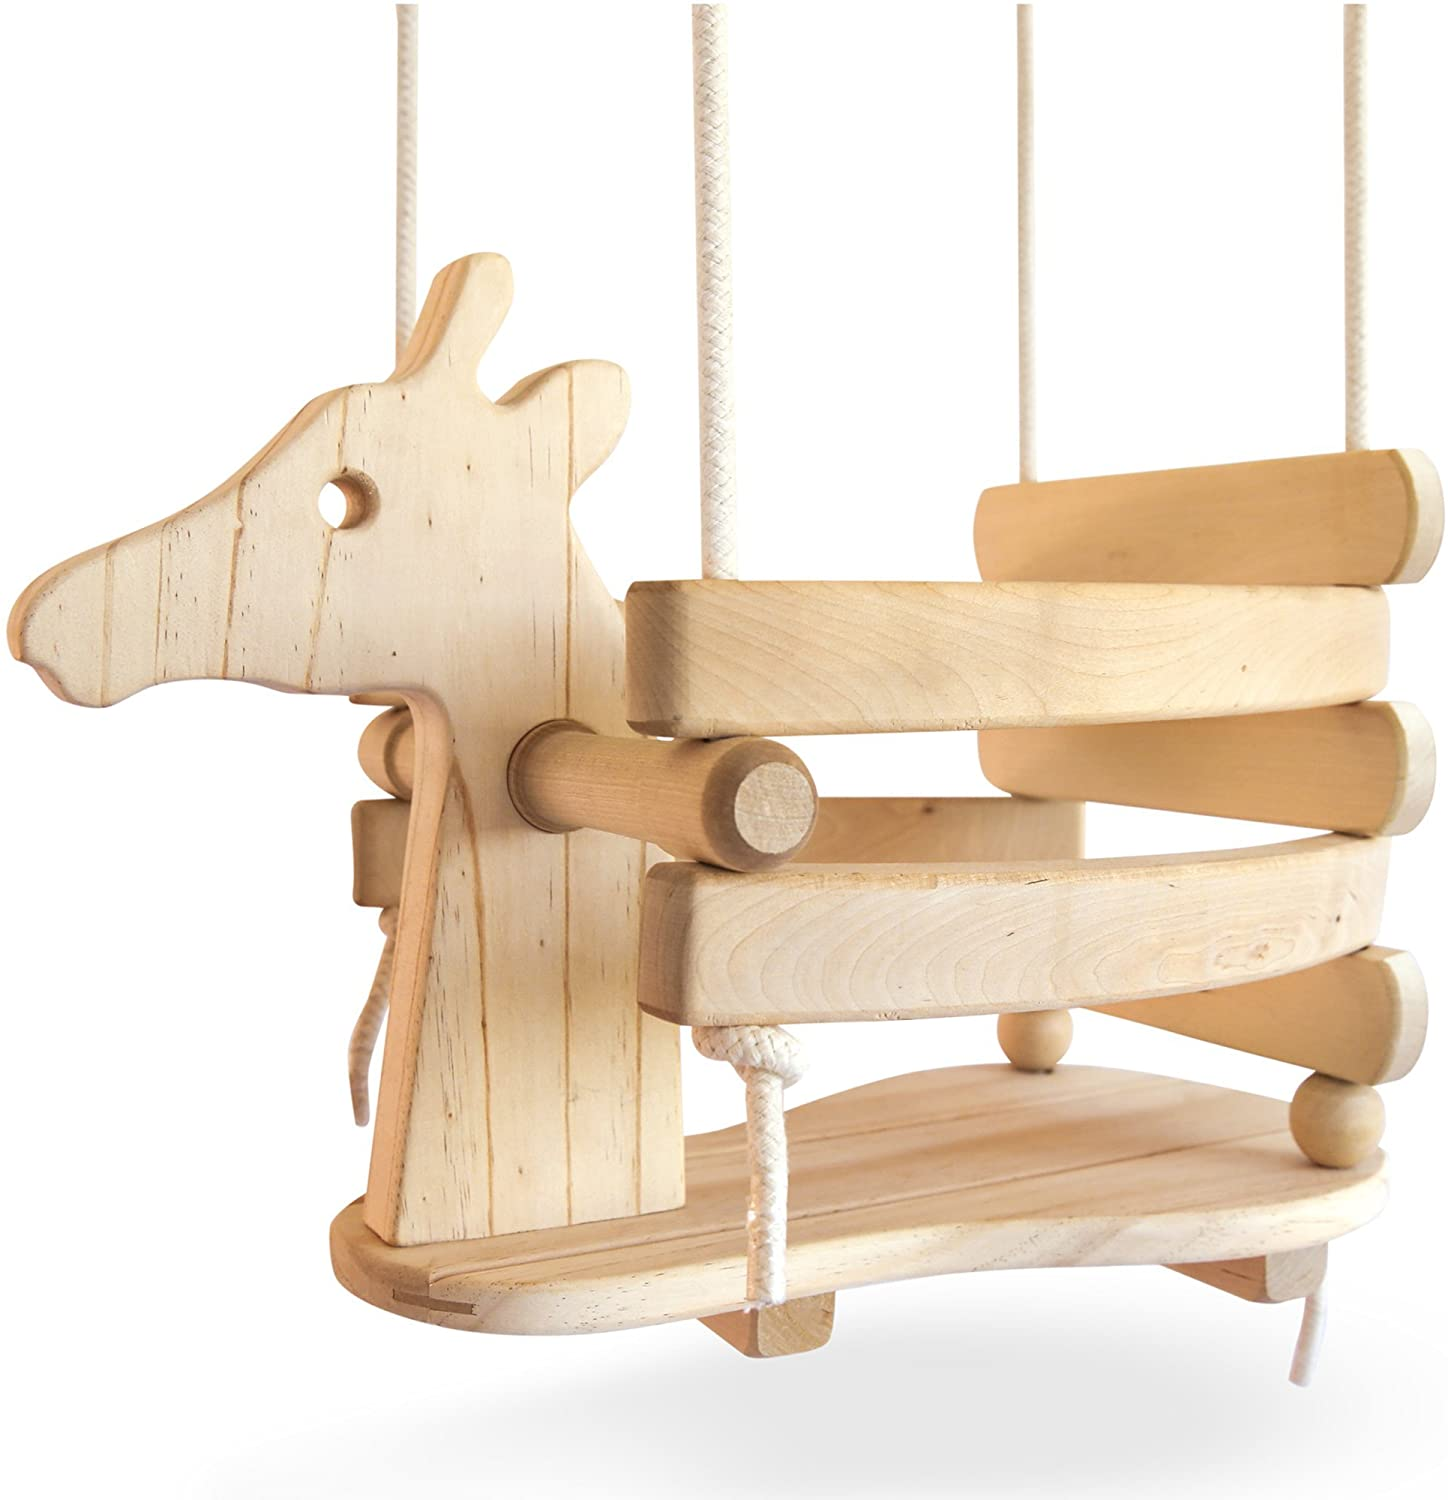 Wooden Giraffe Swing Set for Toddlers - Smooth Birch Wood with Natural Cotton Ropes Outdoor & Indoor Swing - Eco-Conscious Toddler Bucket Swing Chair, for Baby 6 Months to 3 Years Old